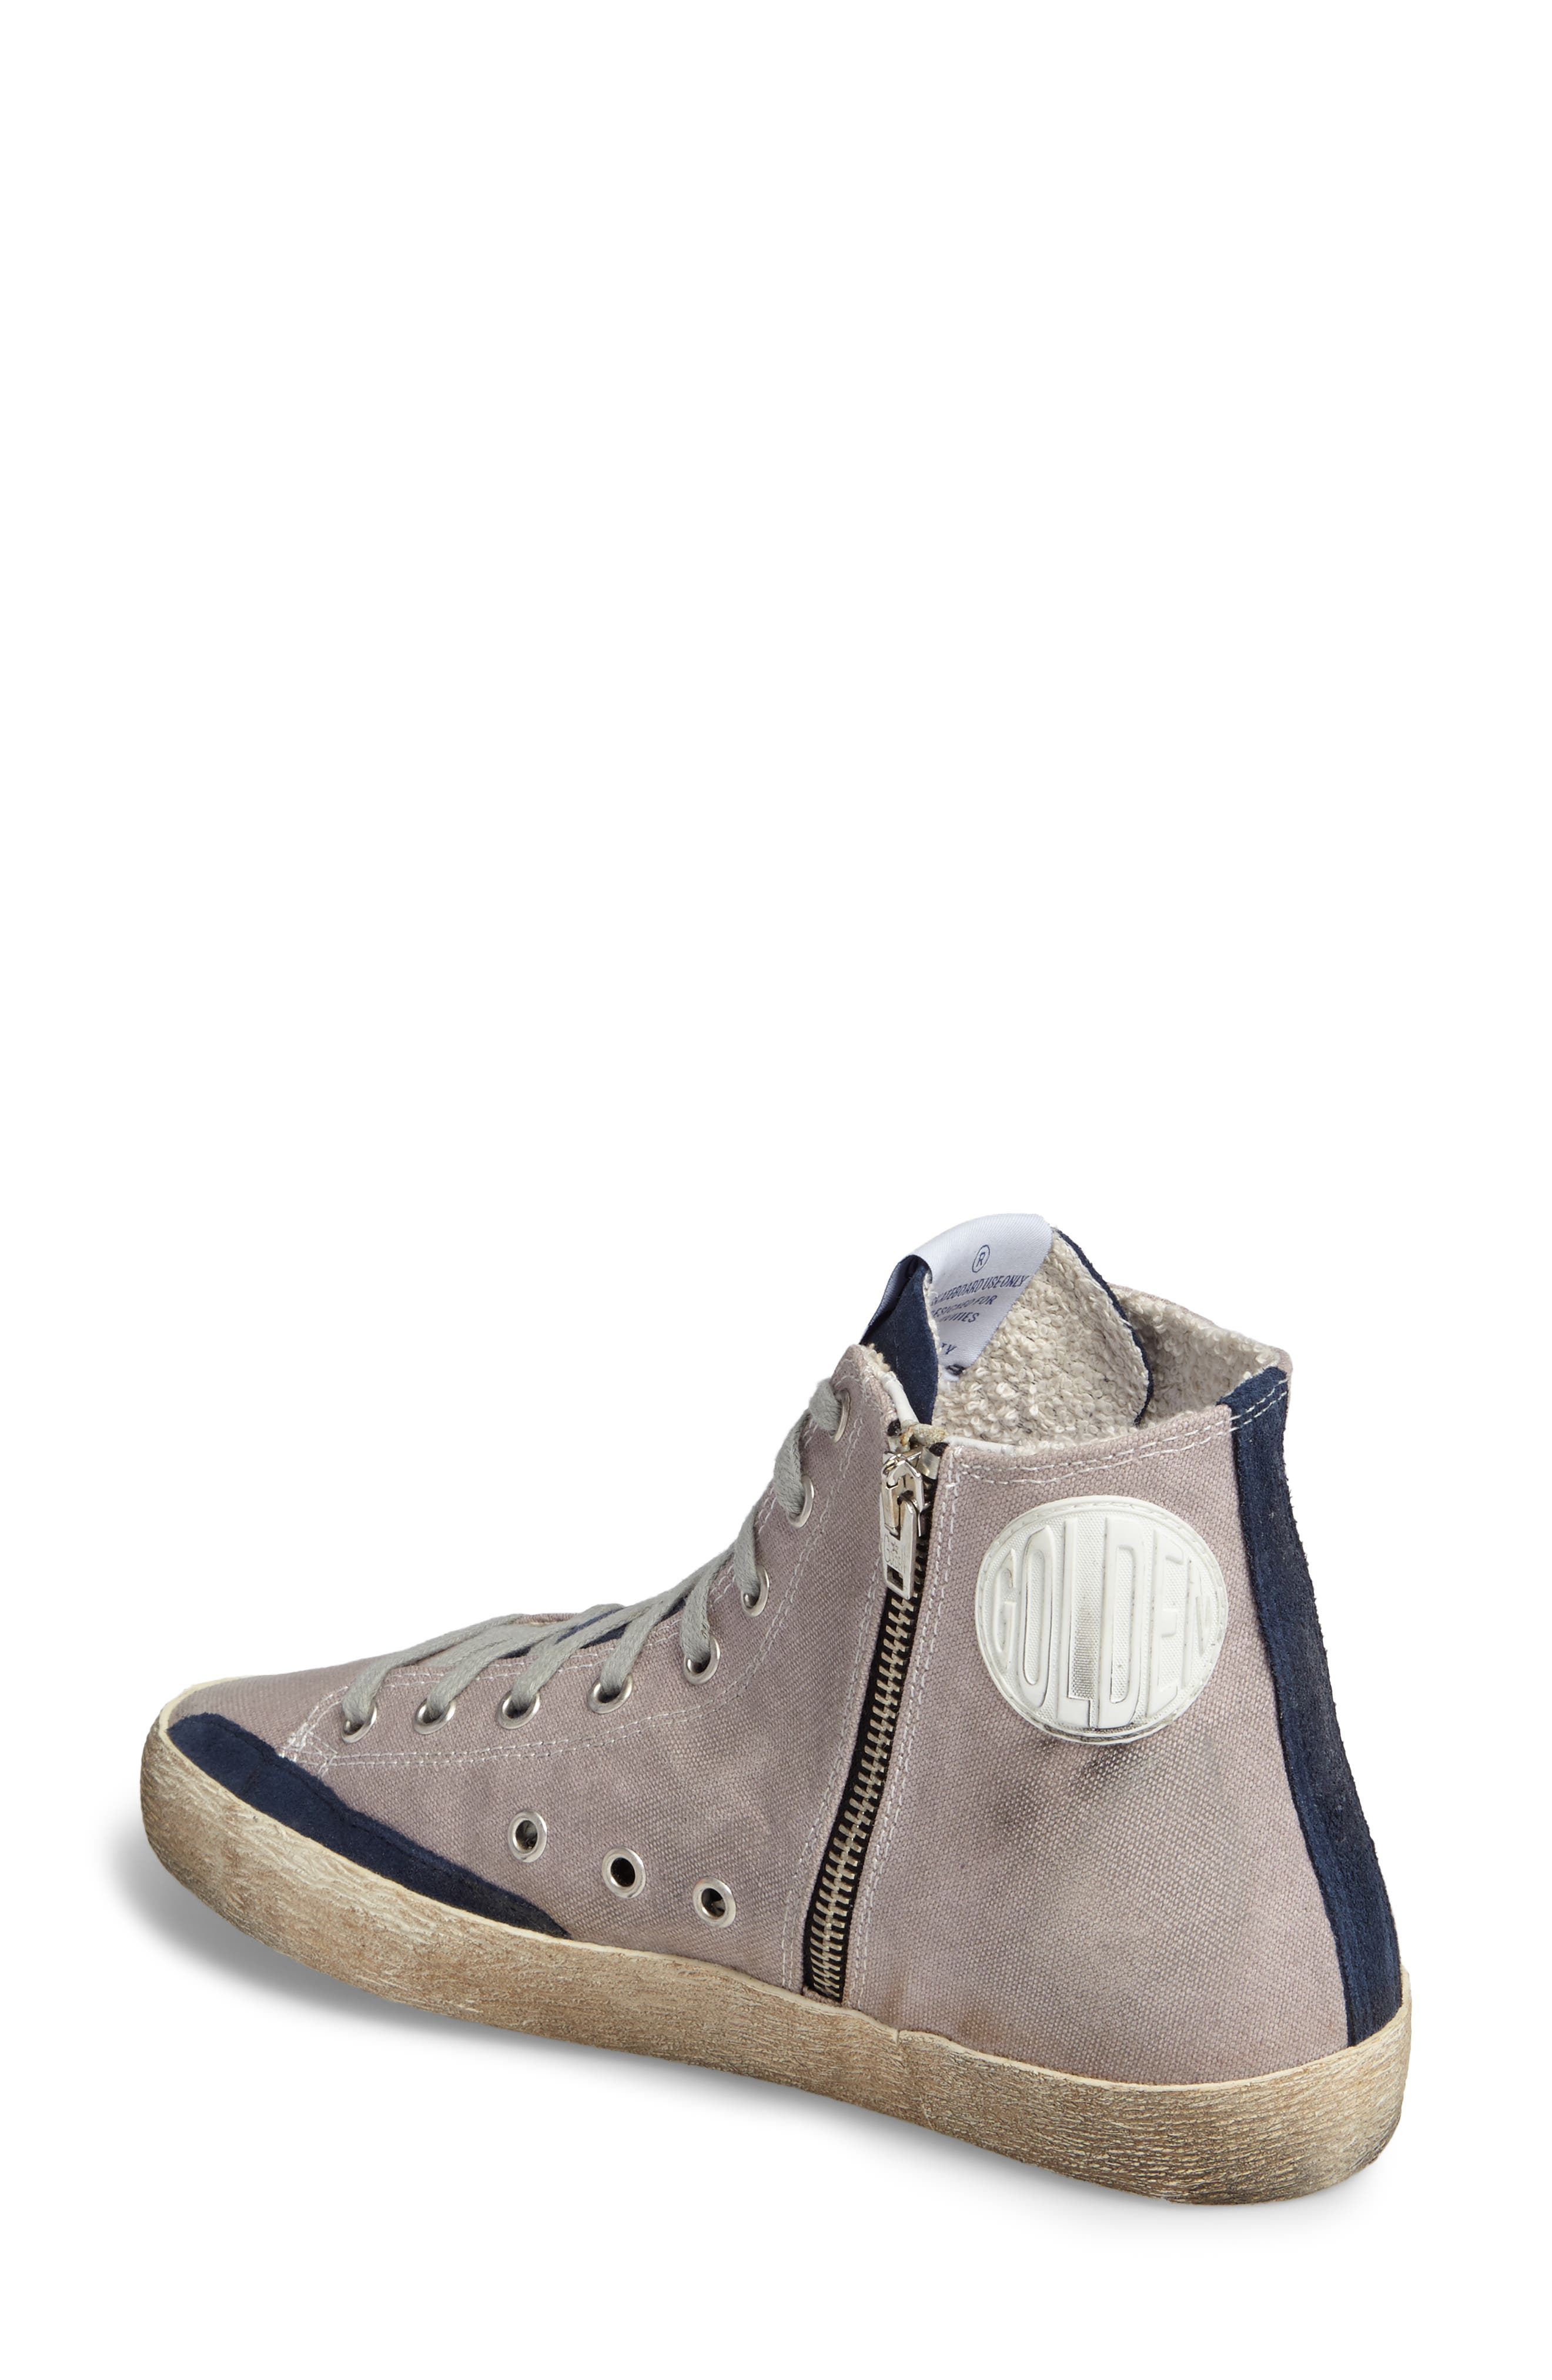 Alternate Image 2  - Golden Goose Francy Mid Top Sneaker (Women)